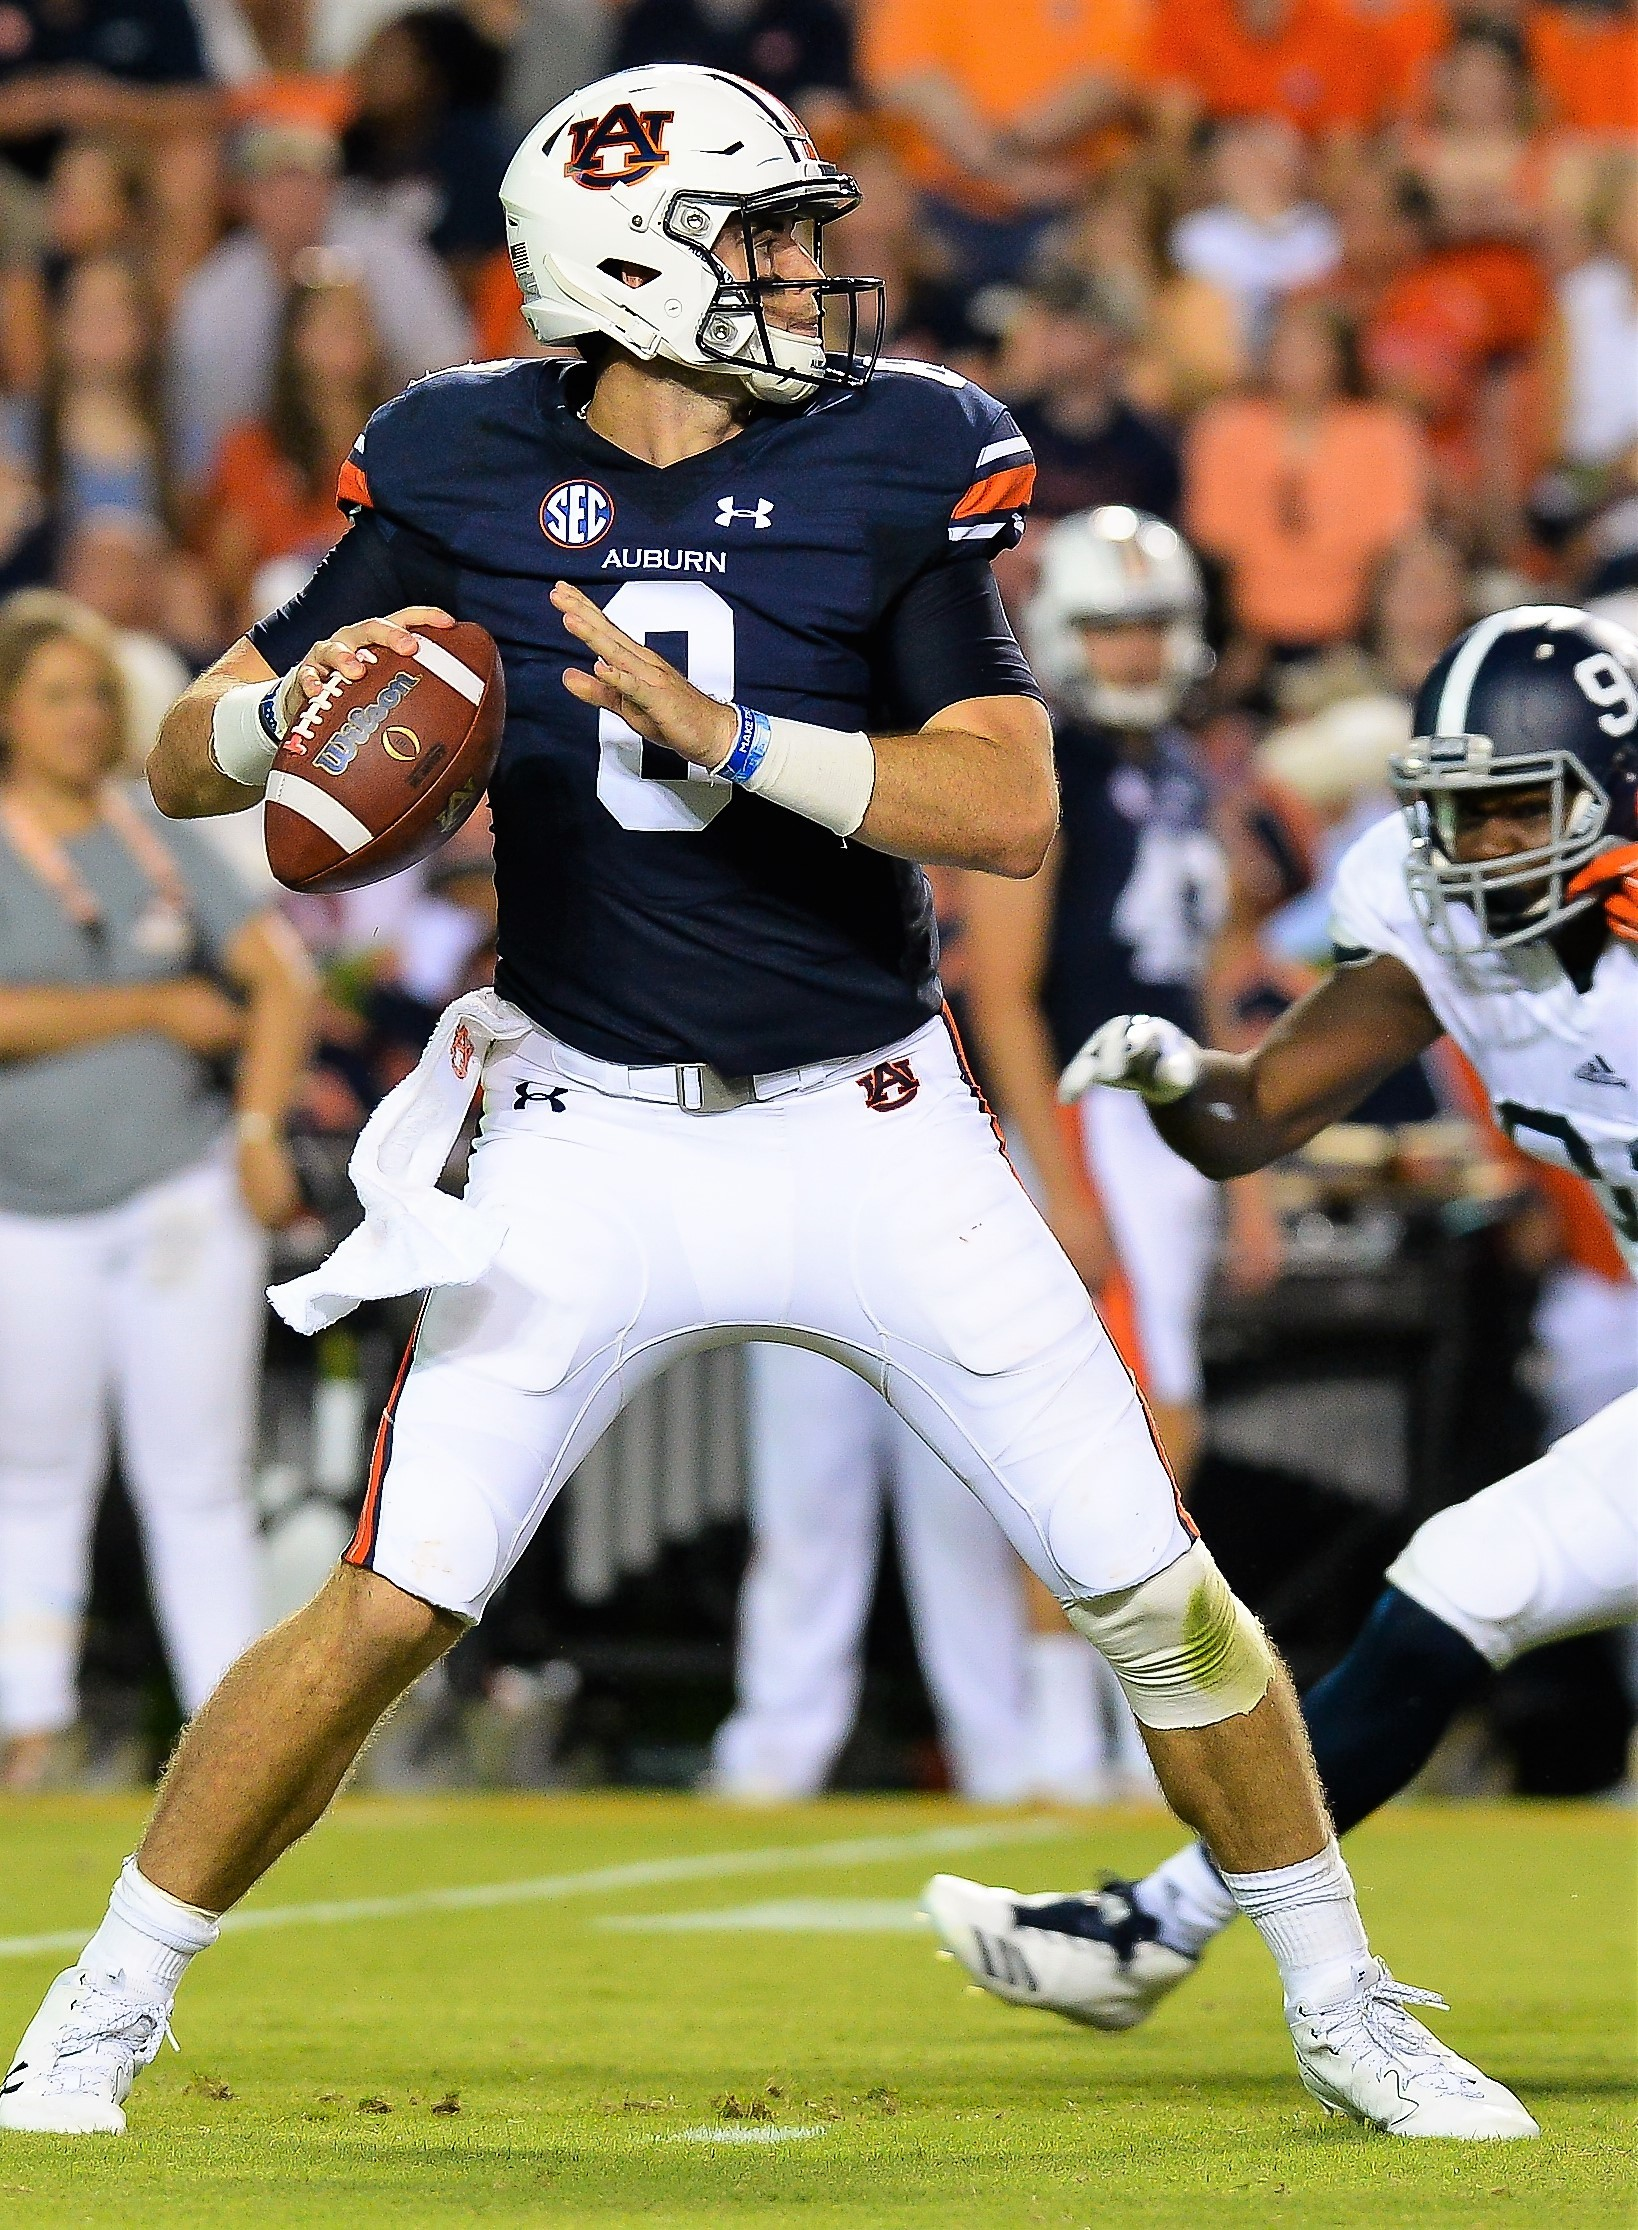 Auburn quarterback Jarrett Stidham looks for a receiver during the first half Saturday at Jordan-Hare Stadium in Auburn. Stidham threw a pair of touchdown passes and ran for another in his Auburn debut against Georgia Southern.